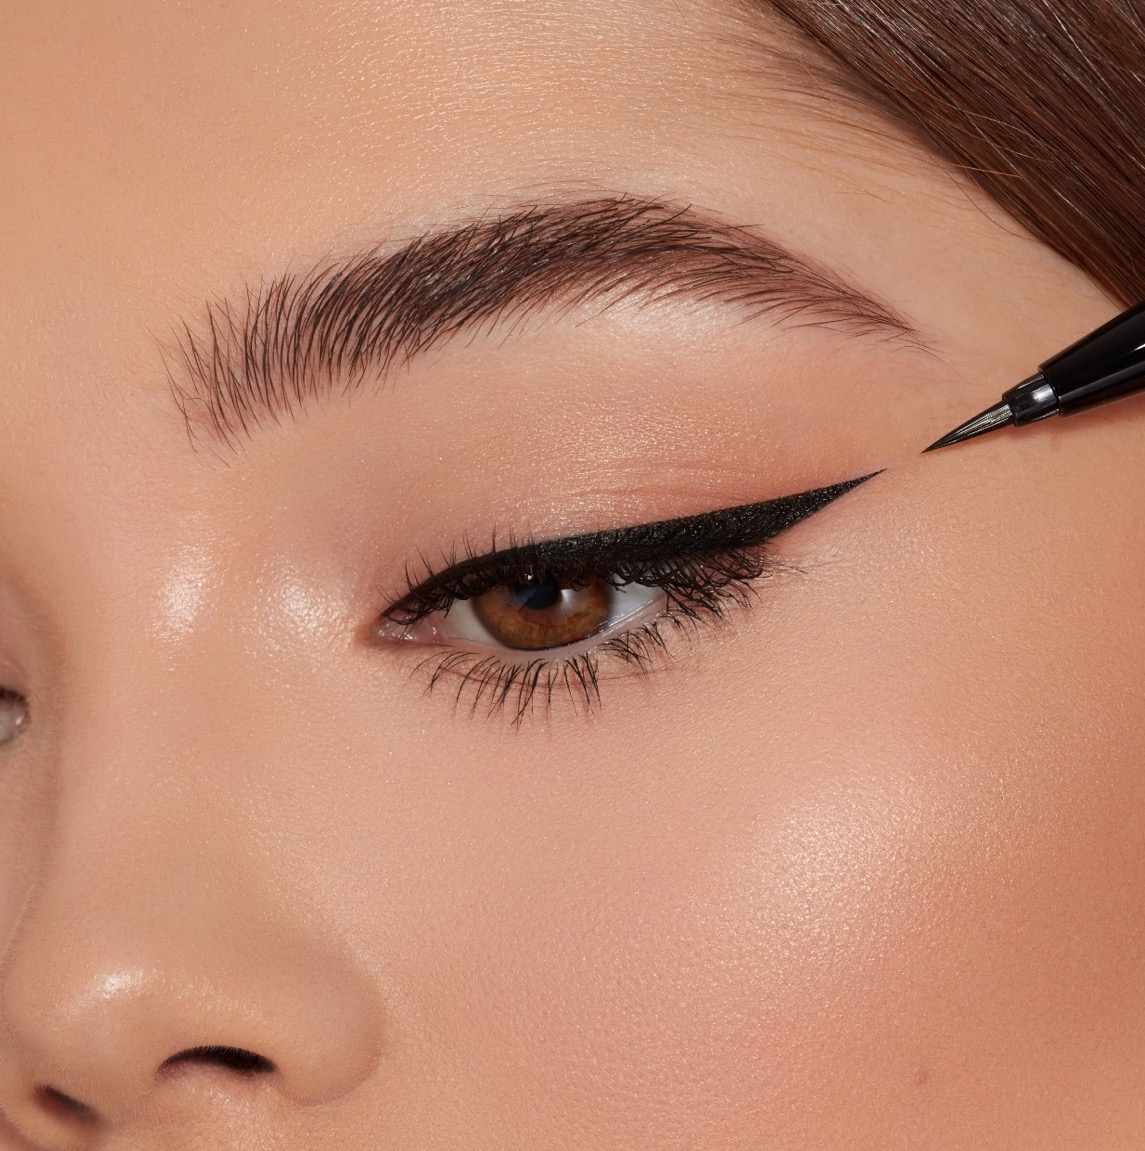 plus Im launching my new black and brown liquid kyliners! 9am pst tomorrow!  http://KylieCosmetics.com